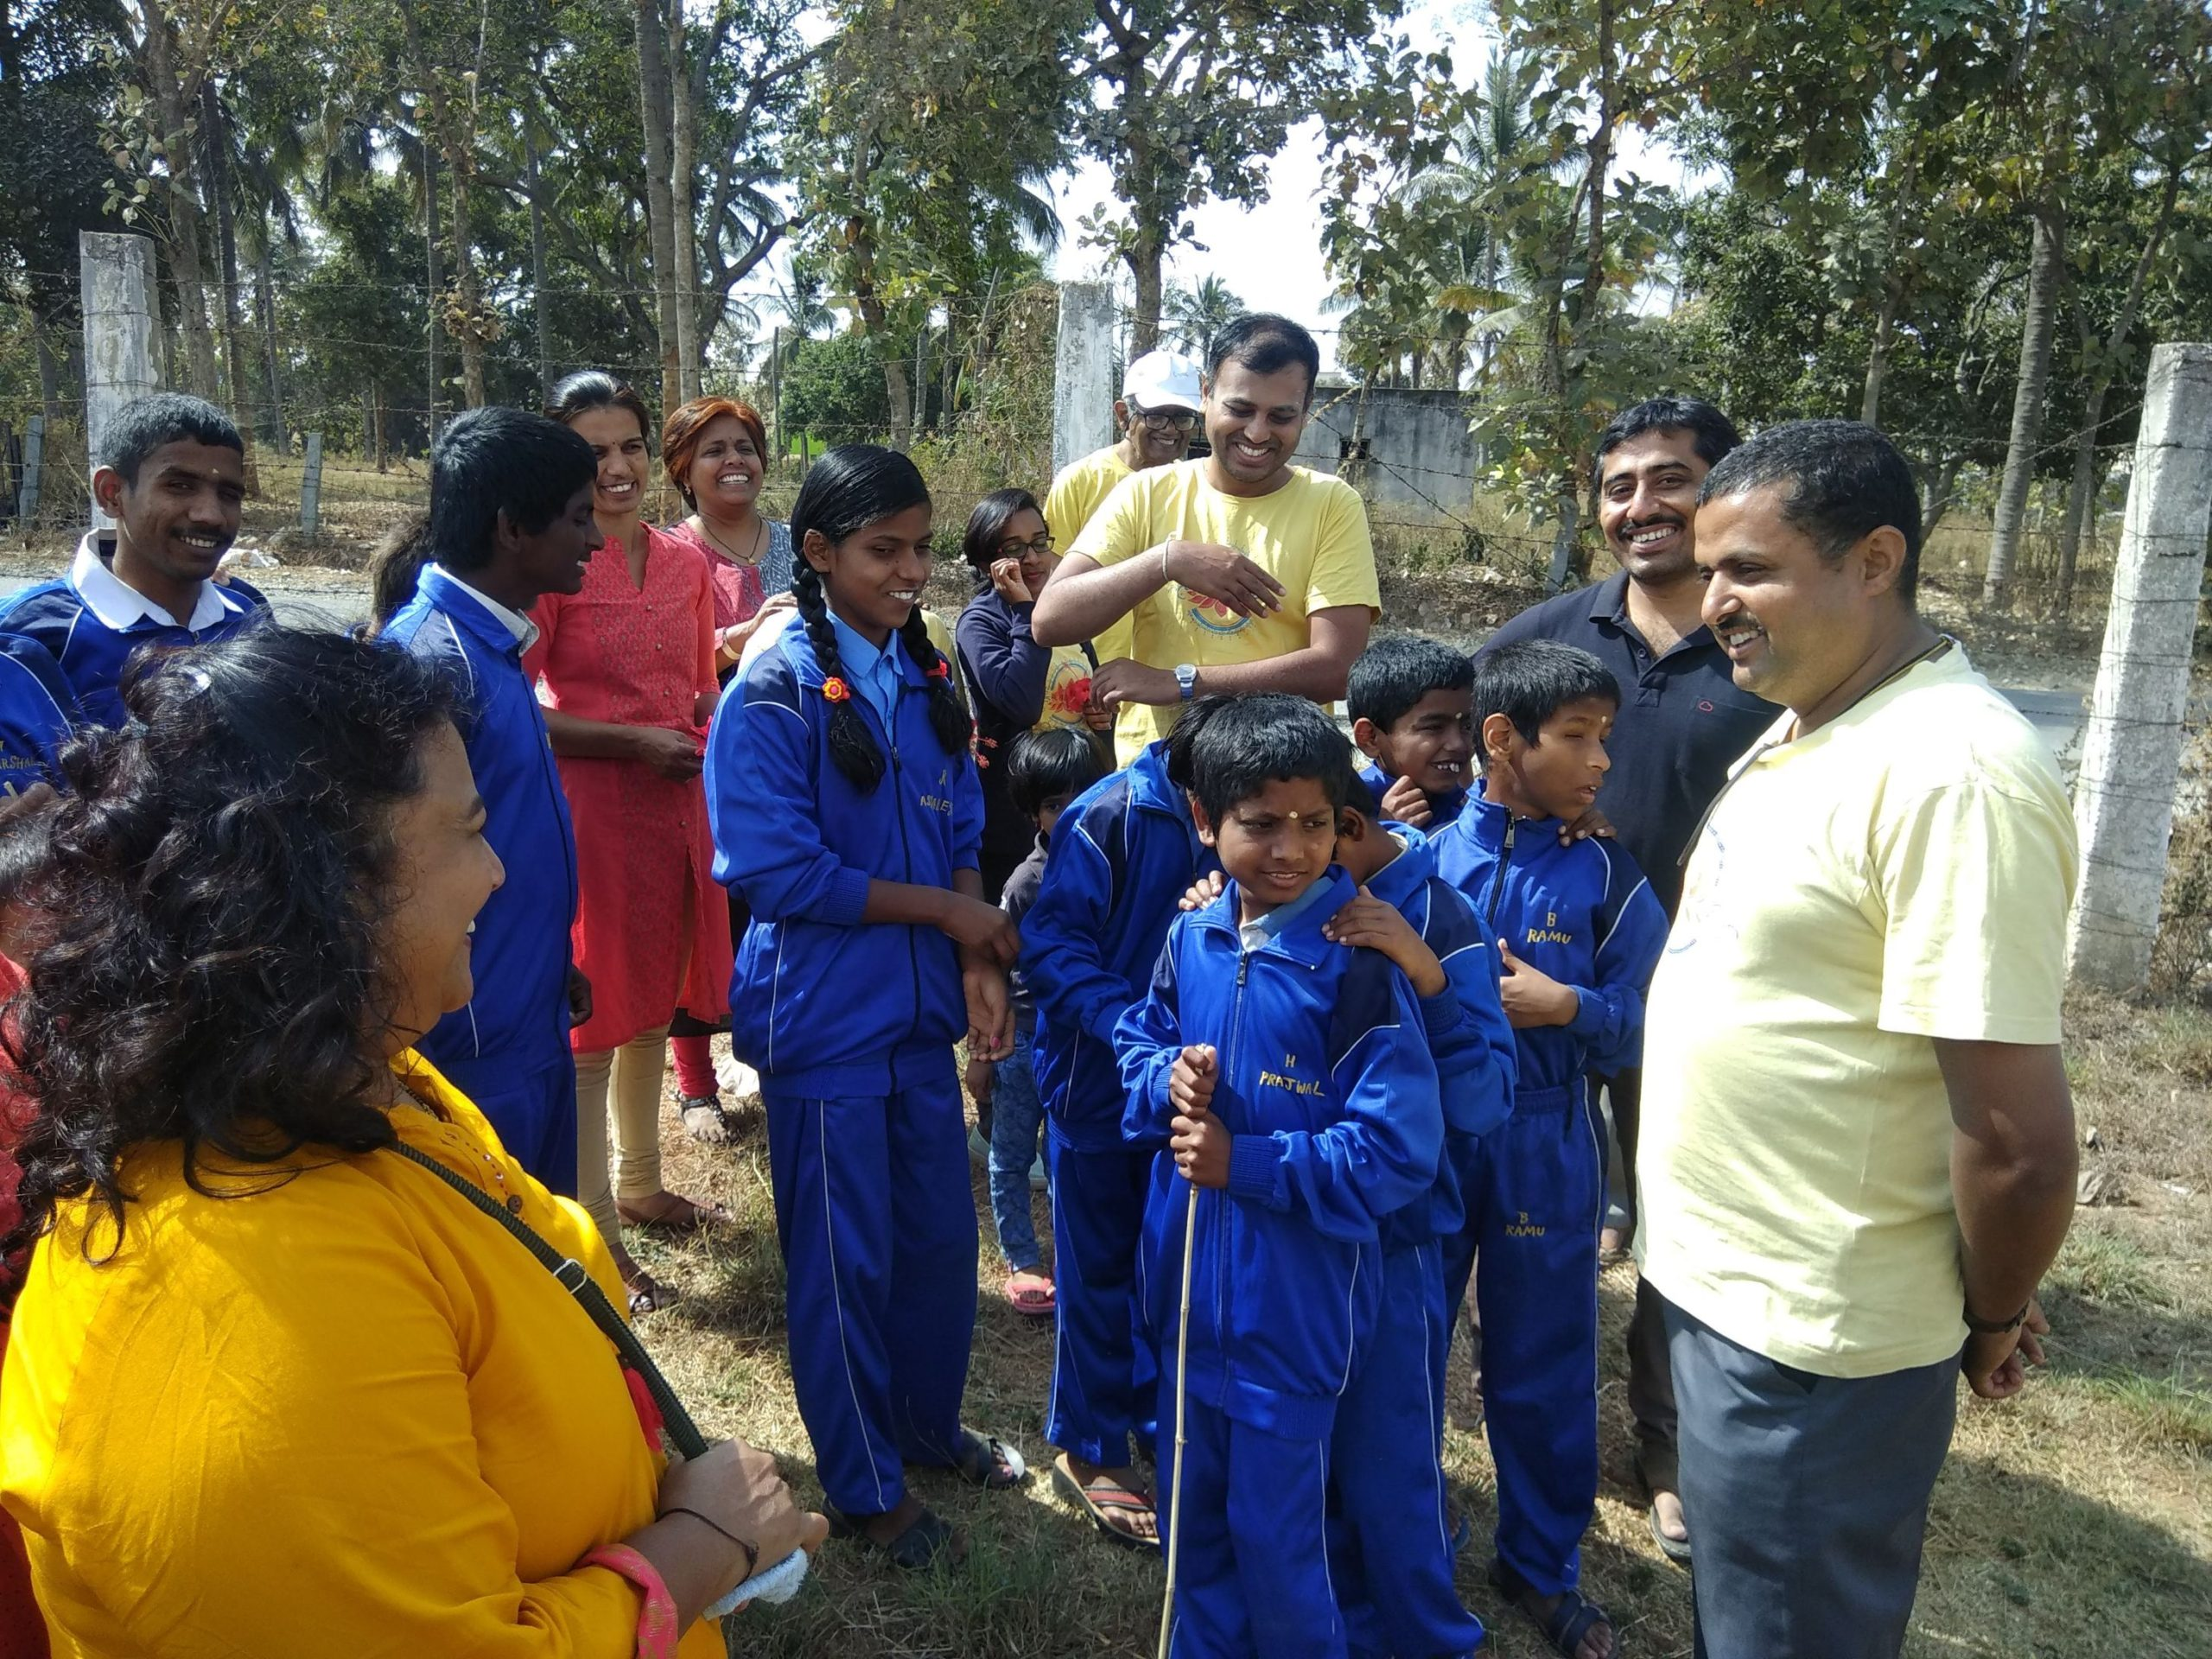 Check well being of Visually challenged students in Belaku